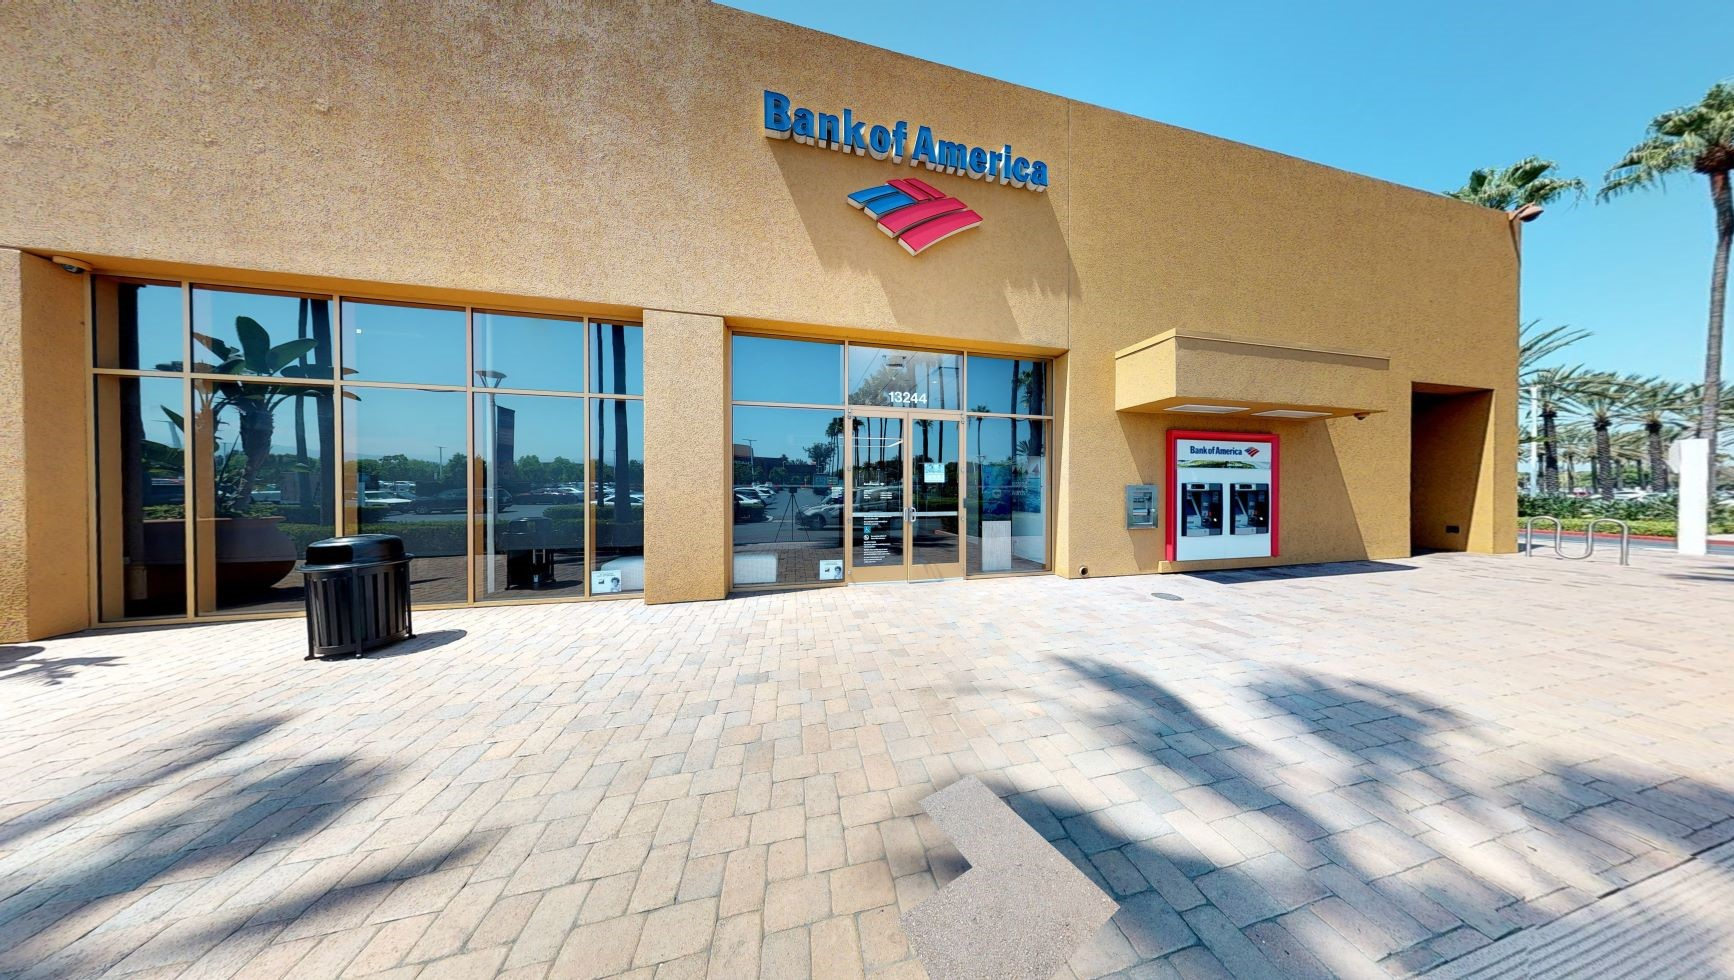 Bank of America financial center with walk-up ATM   13244 Jamboree Rd, Irvine, CA 92602